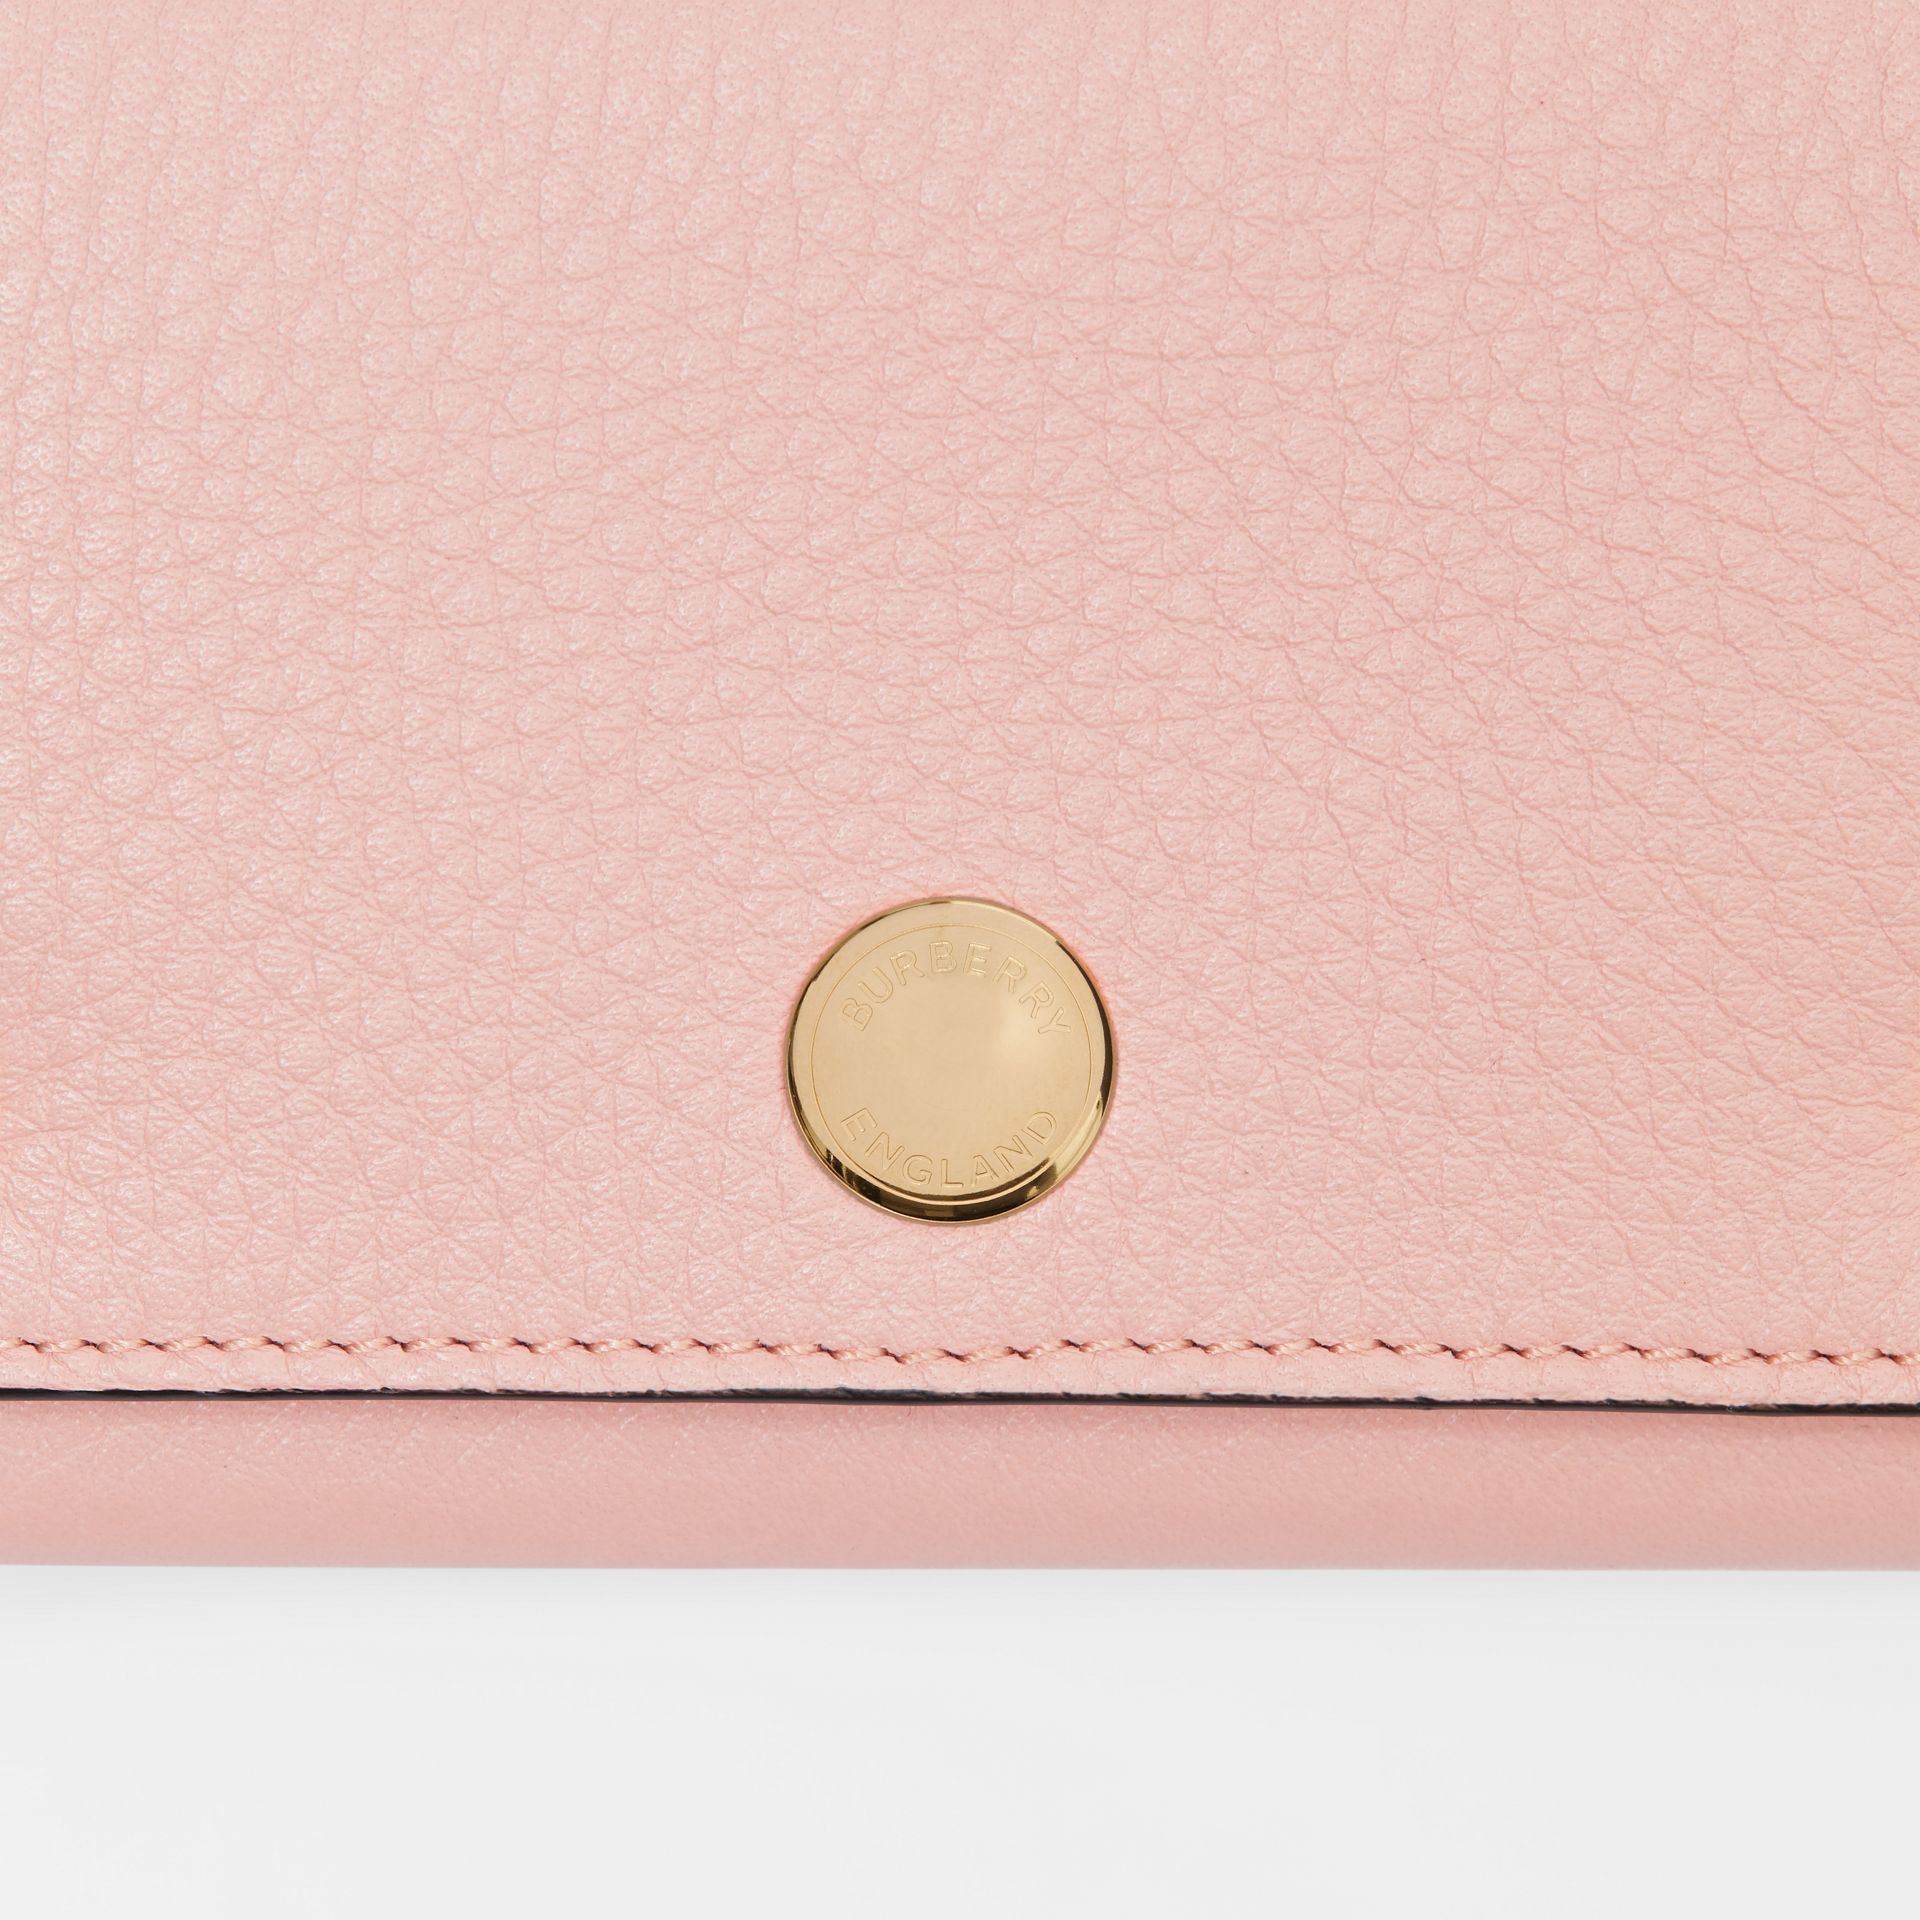 Triple Stud Leather Folding Wallet in Pale Ash Rose - Women | Burberry United Kingdom - gallery image 1